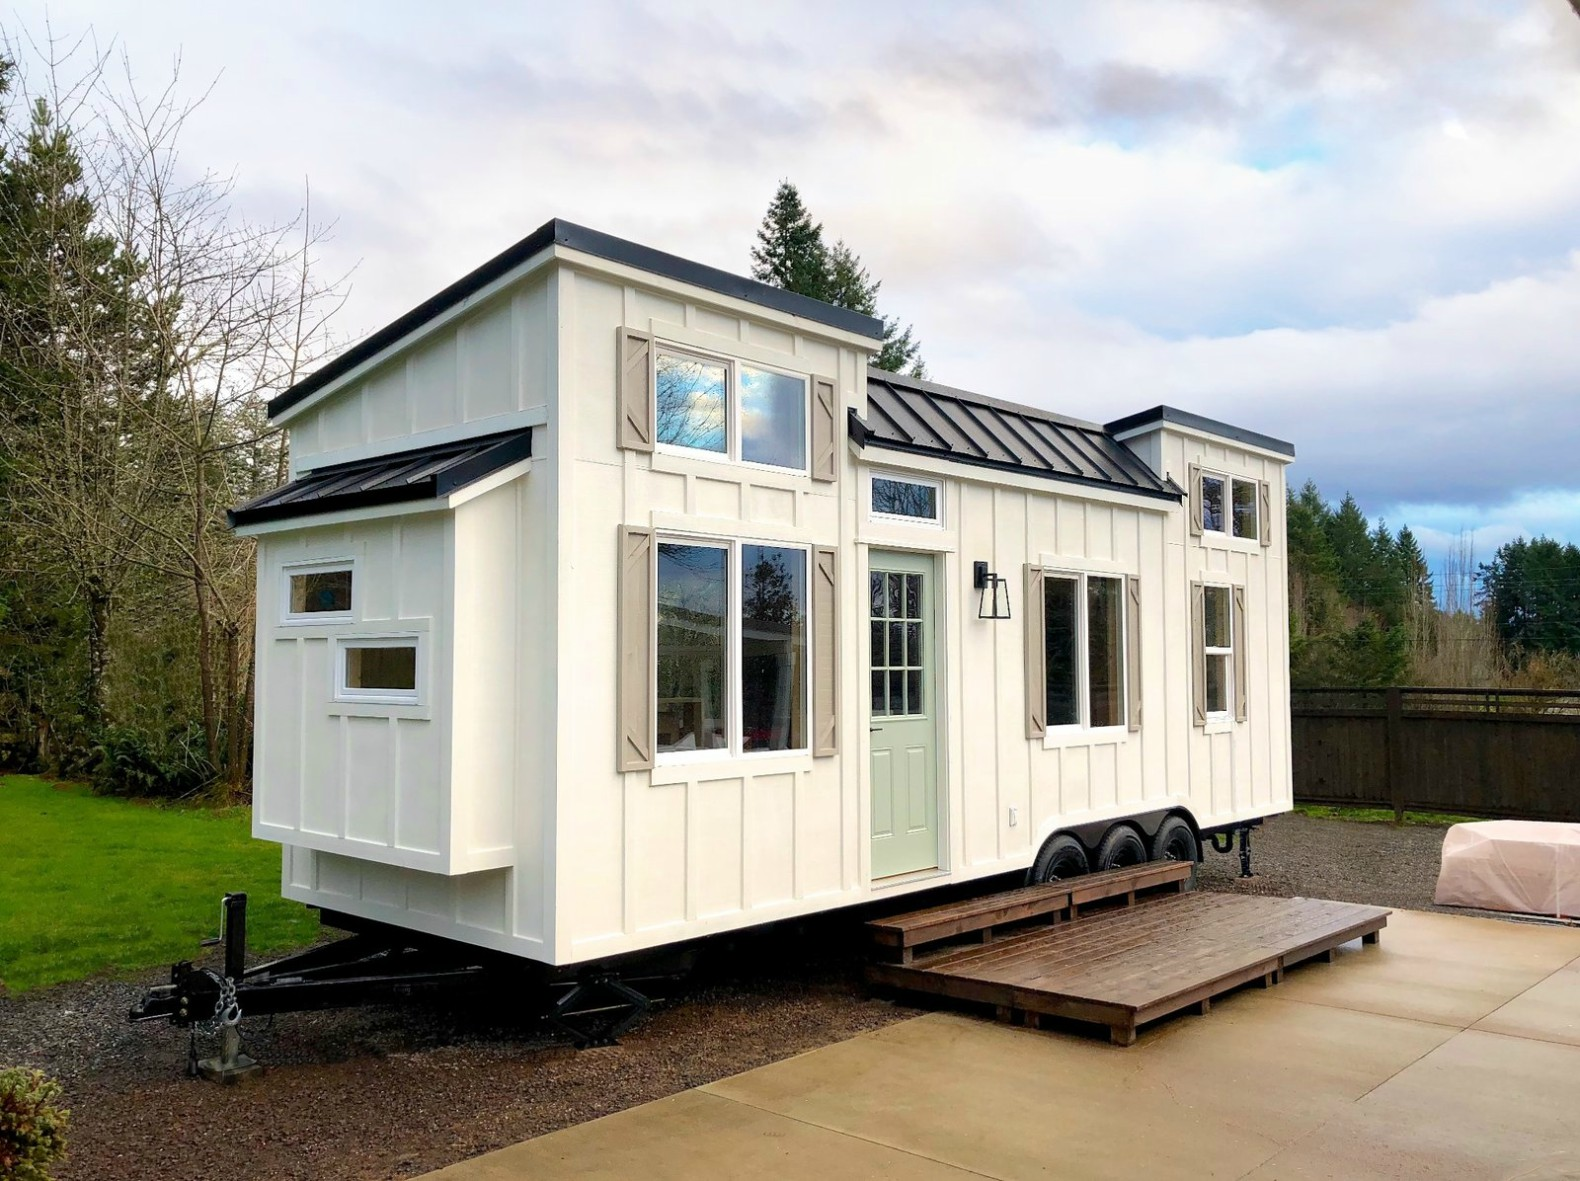 Tiny Home Design on tiny kit homes, tiny art, tiny books, tiny fashion, tiny modular homes, tiny prefab homes, tiny log homes, tiny compact homes, small box type house designs, tiny bedroom, tiny plans, tiny portable homes, tiny custom homes, tiny room design ideas, loft small house designs, tiny homes with staircases, tiny interior design, tiny homes inside and outside, mini bungalow house plans designs, tiny house,